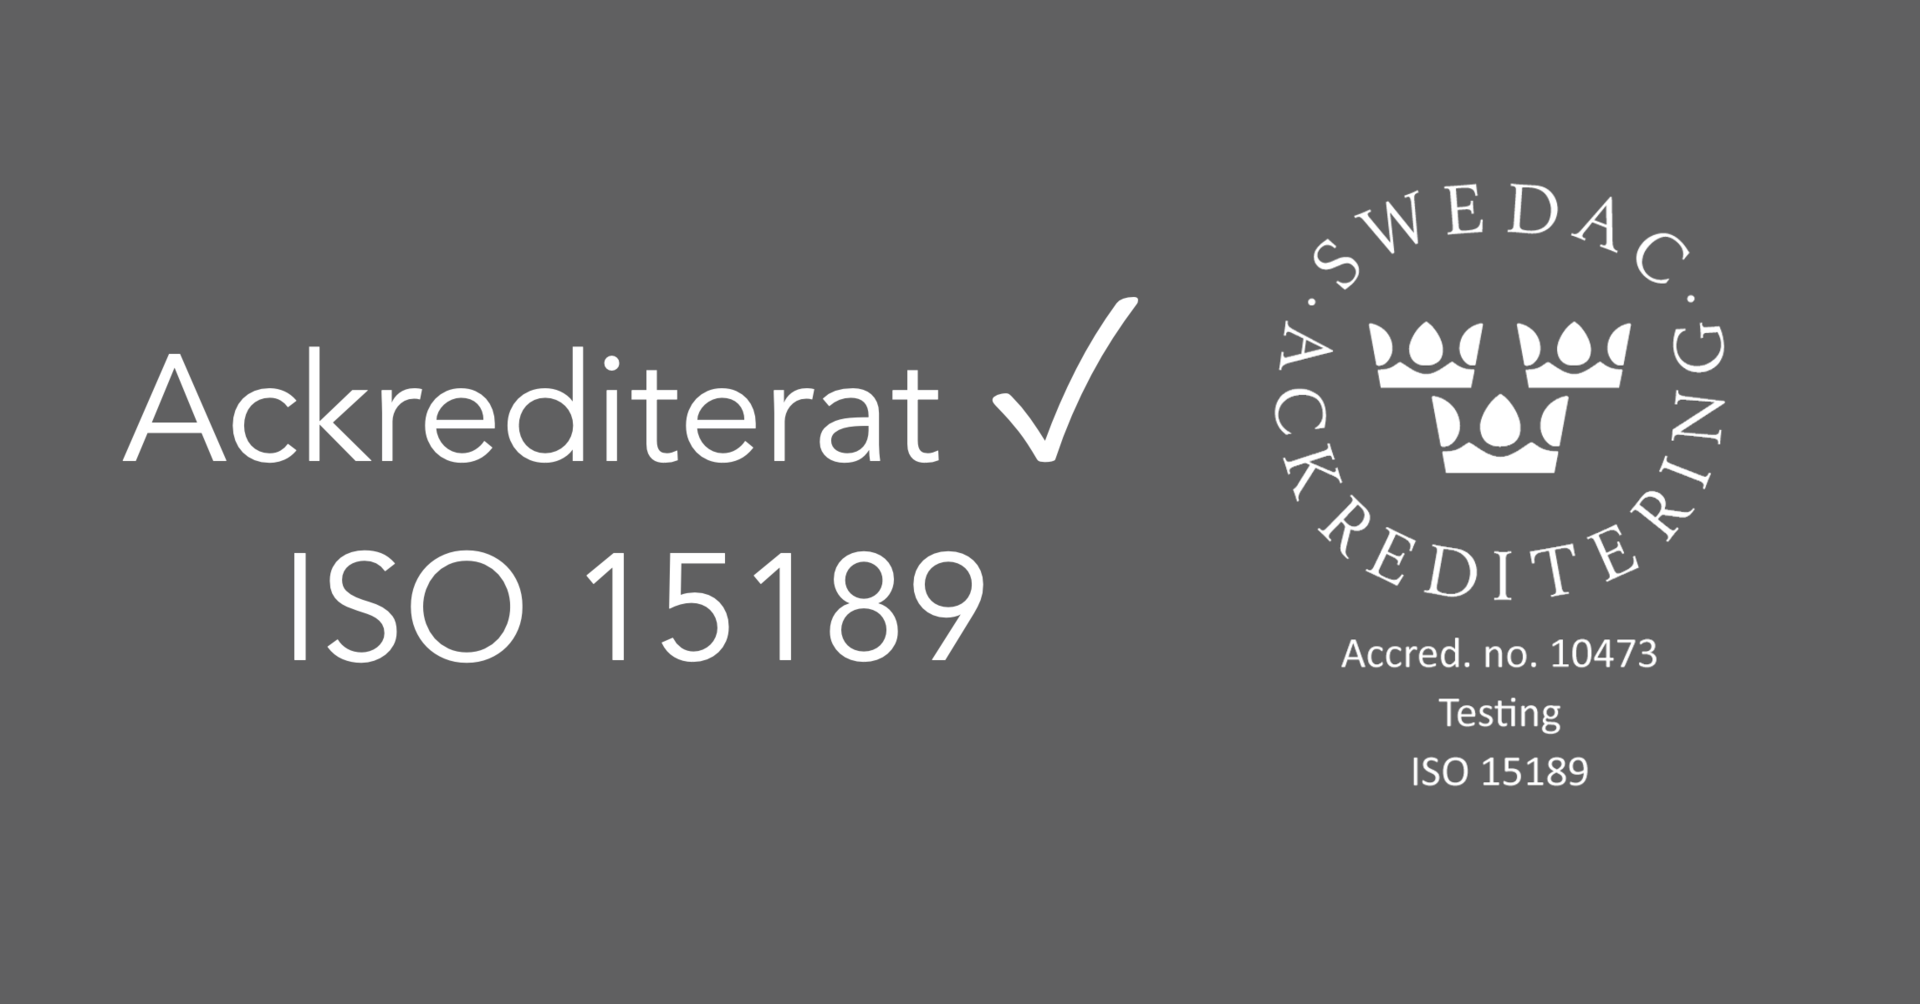 iCellate is the only Swedish company that holds an ISO 15189 certification within cancer diagnostics.